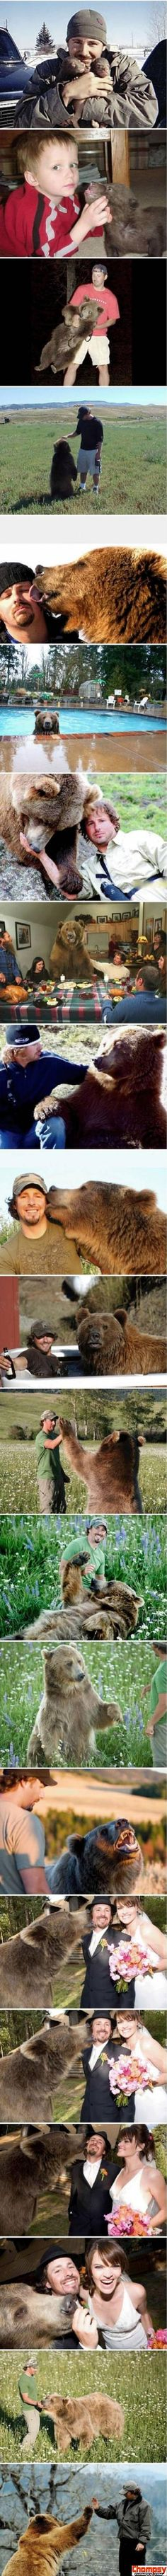 Never met his bear but Casey Anderson is very yummy in person!